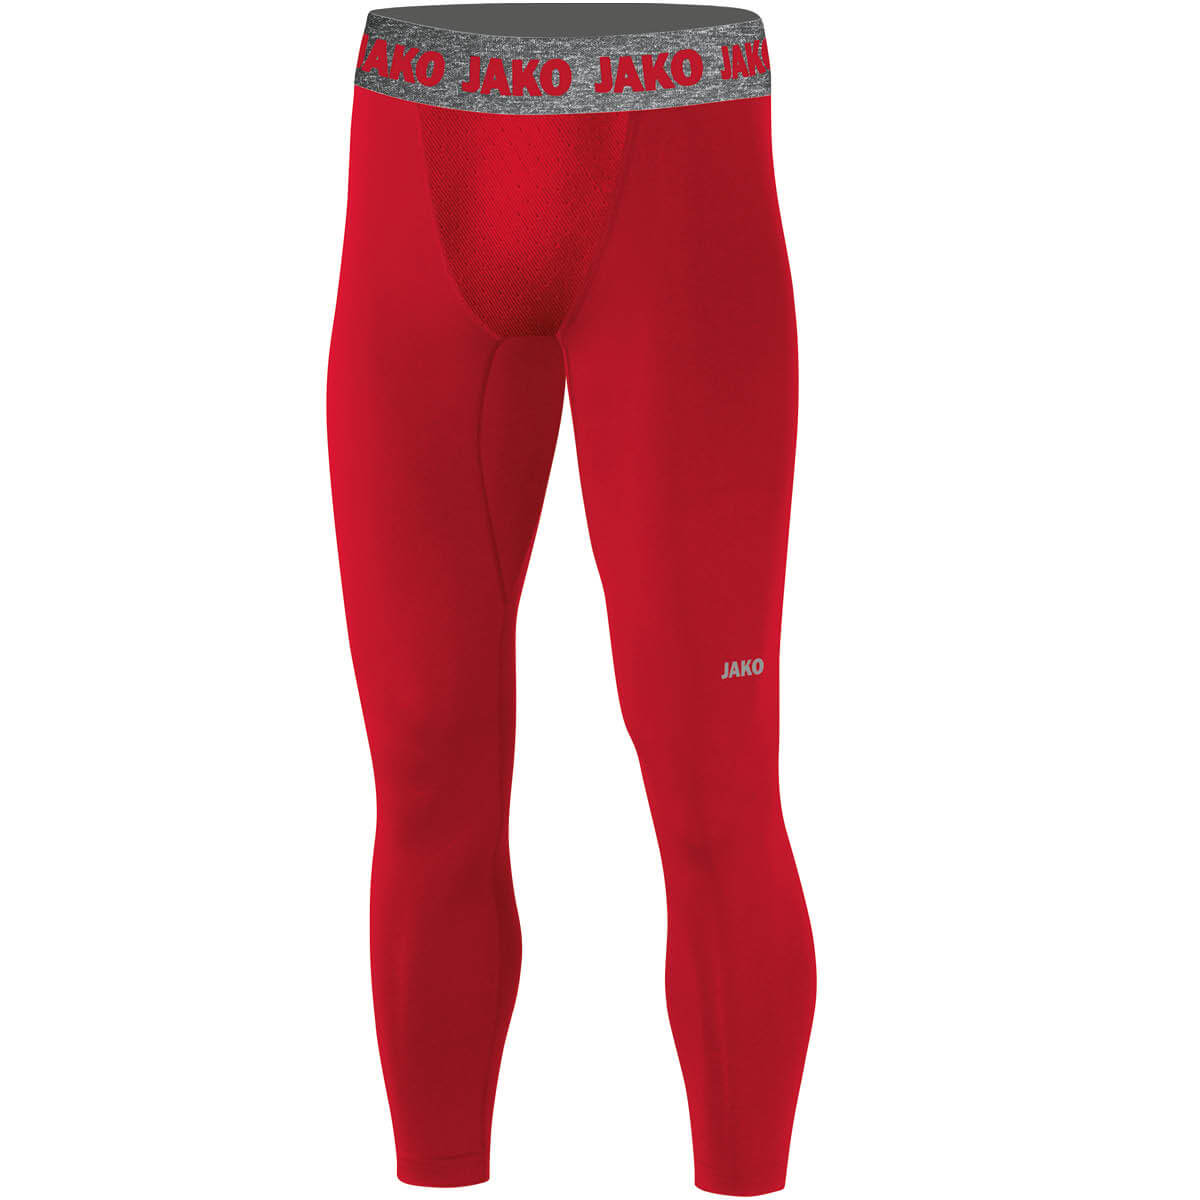 Long Tight Compression 2.0 - Kinder | Jako 8451